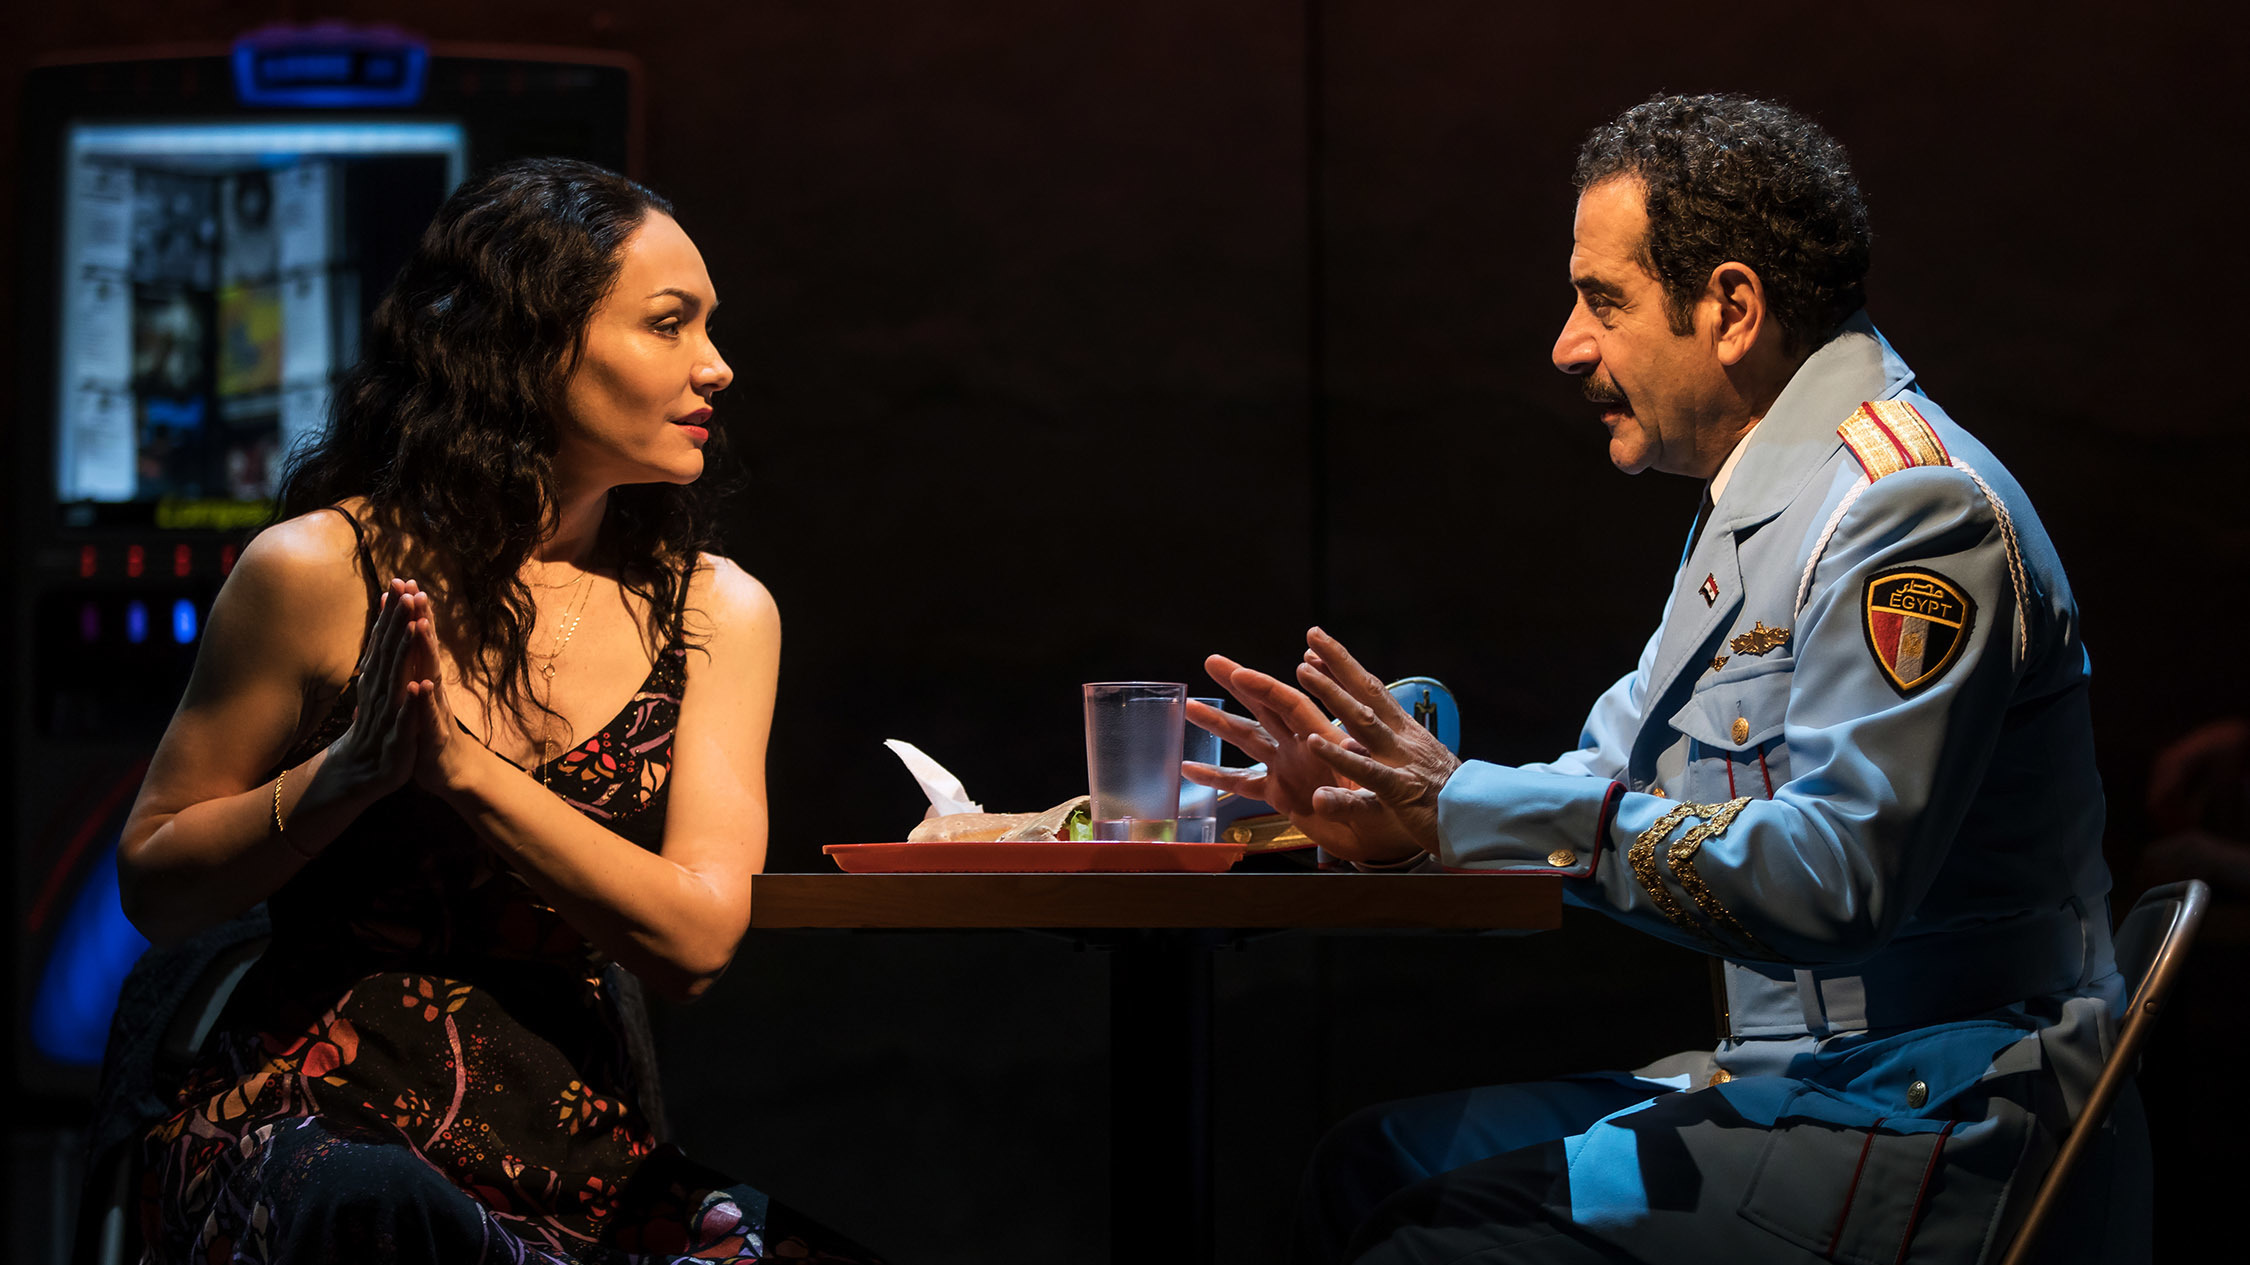 Image for Broadway's 'The Band's Visit' Tells A Story Of Common Ground Between Cultures Article